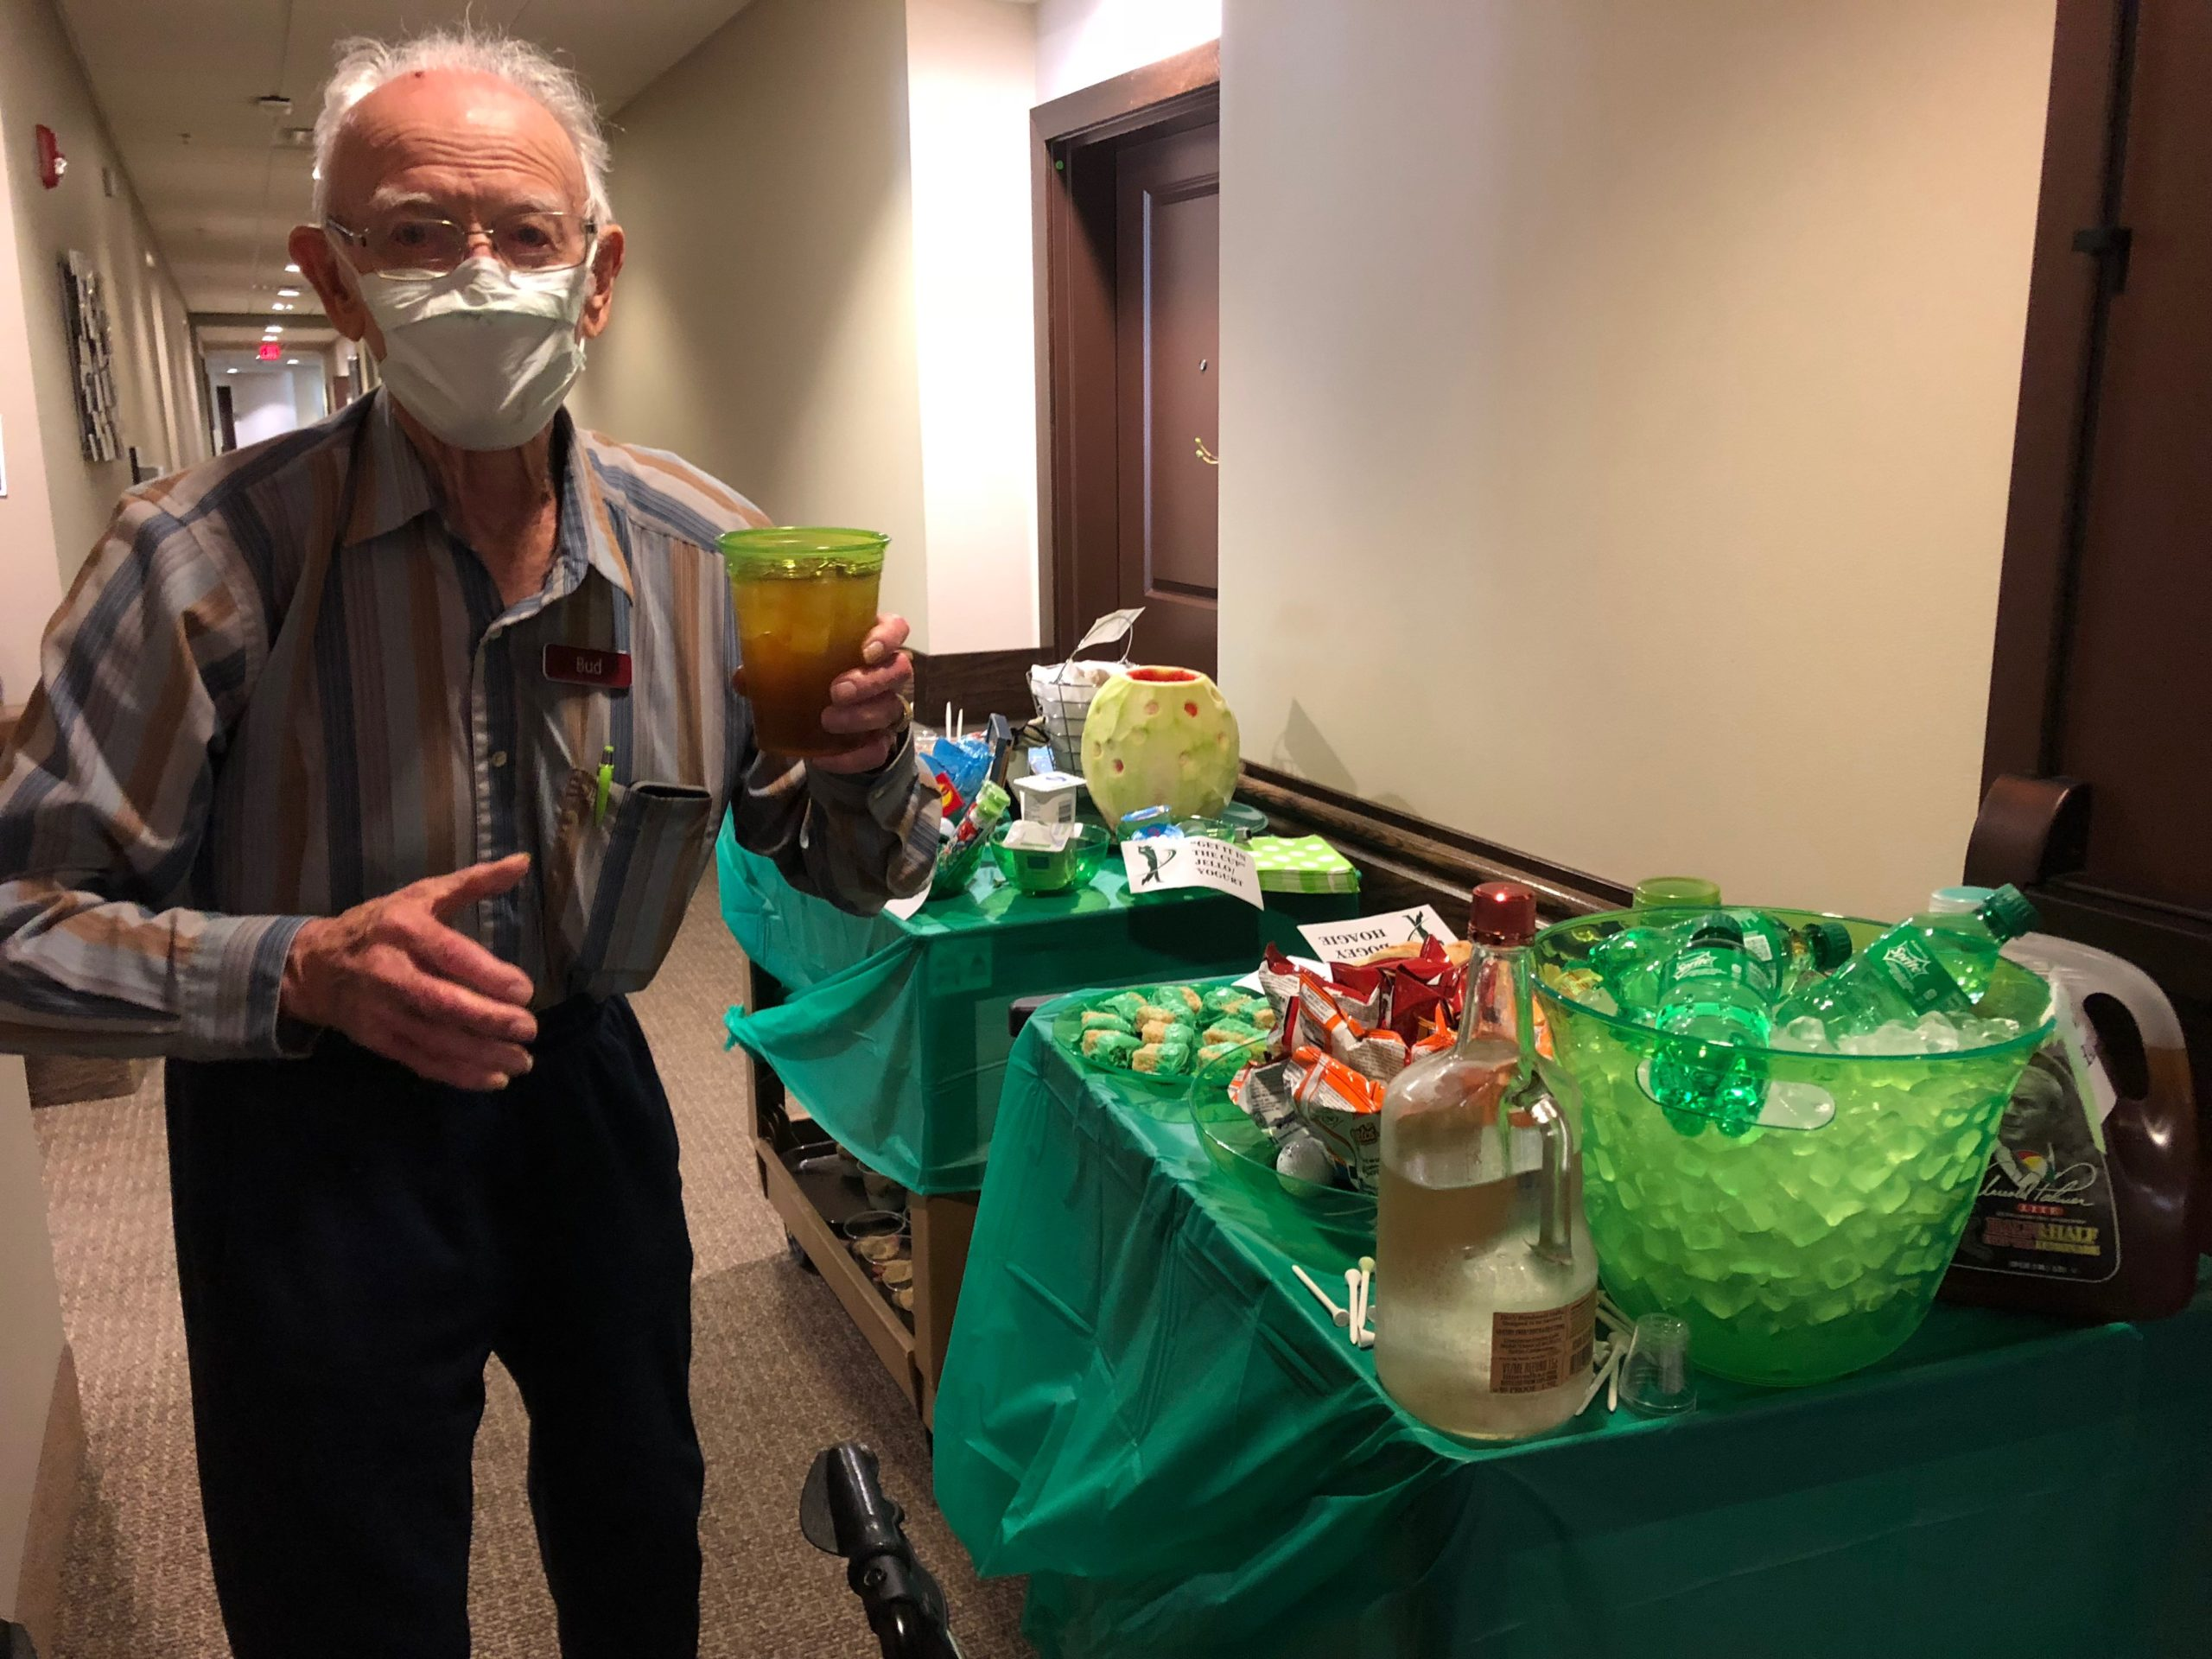 Each Wednesday in August residents are greeted by a mystery themed cart and this week we celebrated National Golf Month with refreshments such as Arnold Palmers, Birdie Bites, Chip Shots, Sand Traps, Bogey Hoagies, and Caddy Candy!